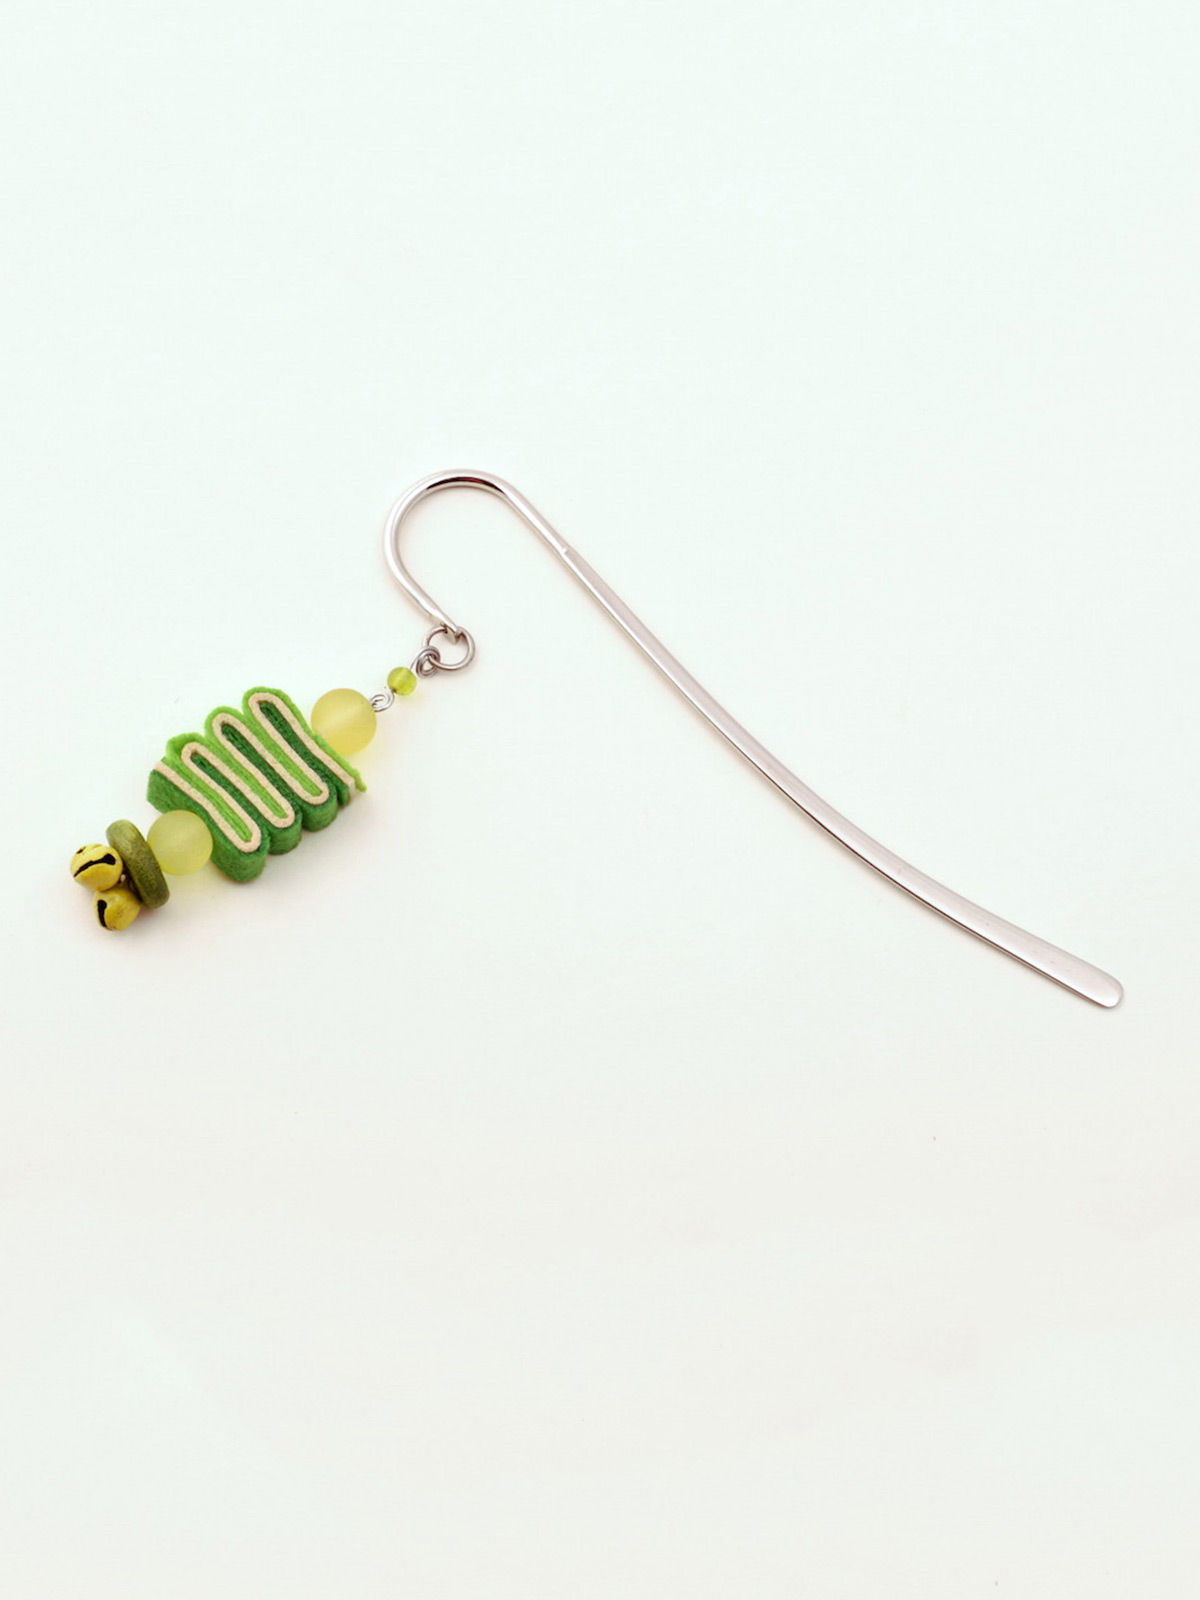 Bookworm Bookmark - Green